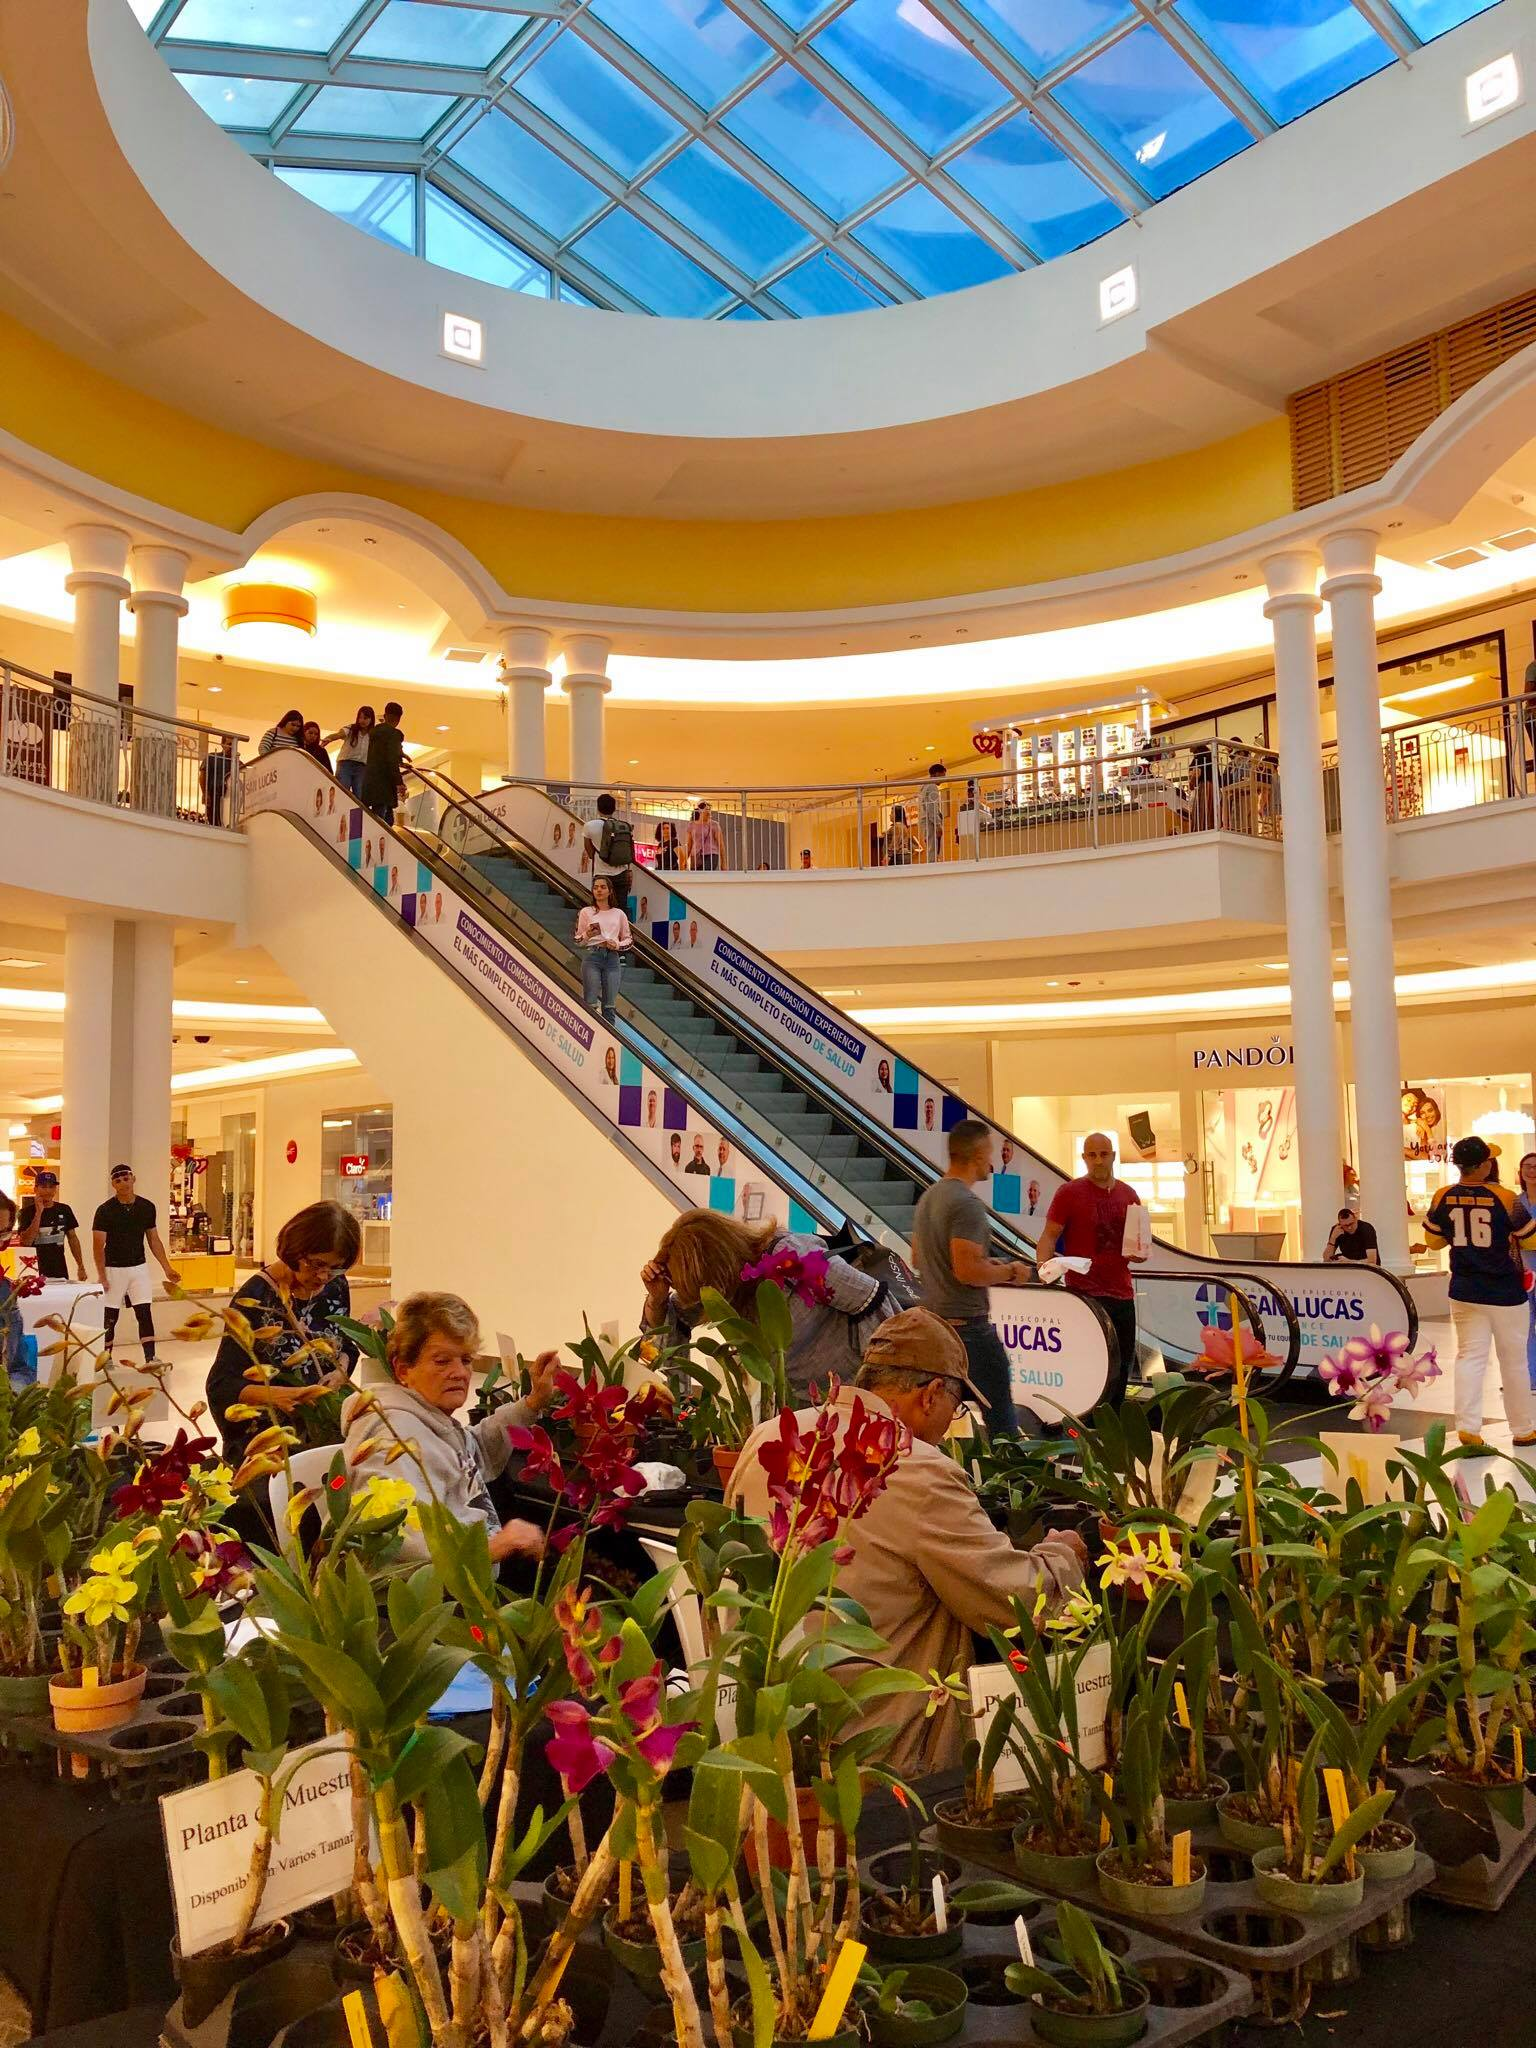 Sailing Life Day 333 We went to the shopping mall - Plaza Caribe in Ponce, Puerto Rico1.jpg